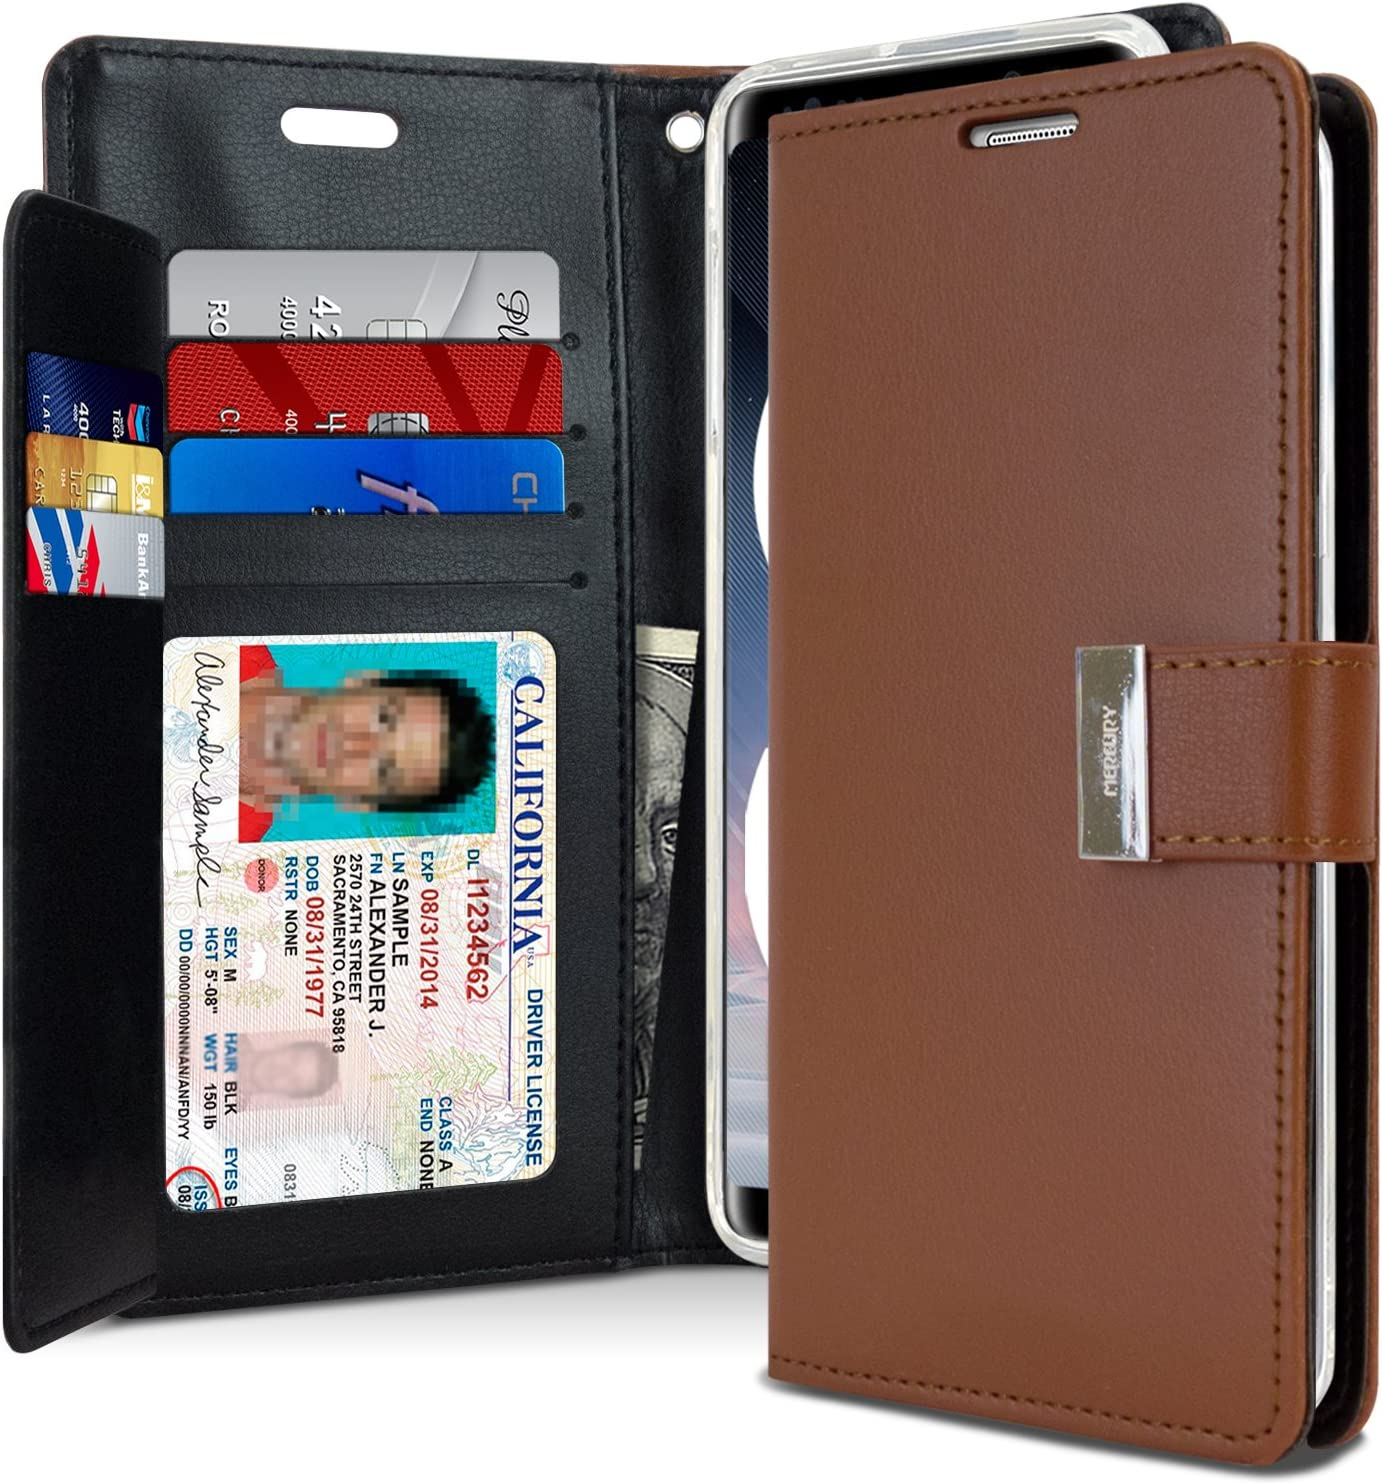 Goospery Rich Wallet for Samsung Galaxy Note 8 Case (2017) Extra Card Slots Leather Flip Cover (Brown) NT8-RIC-BRN